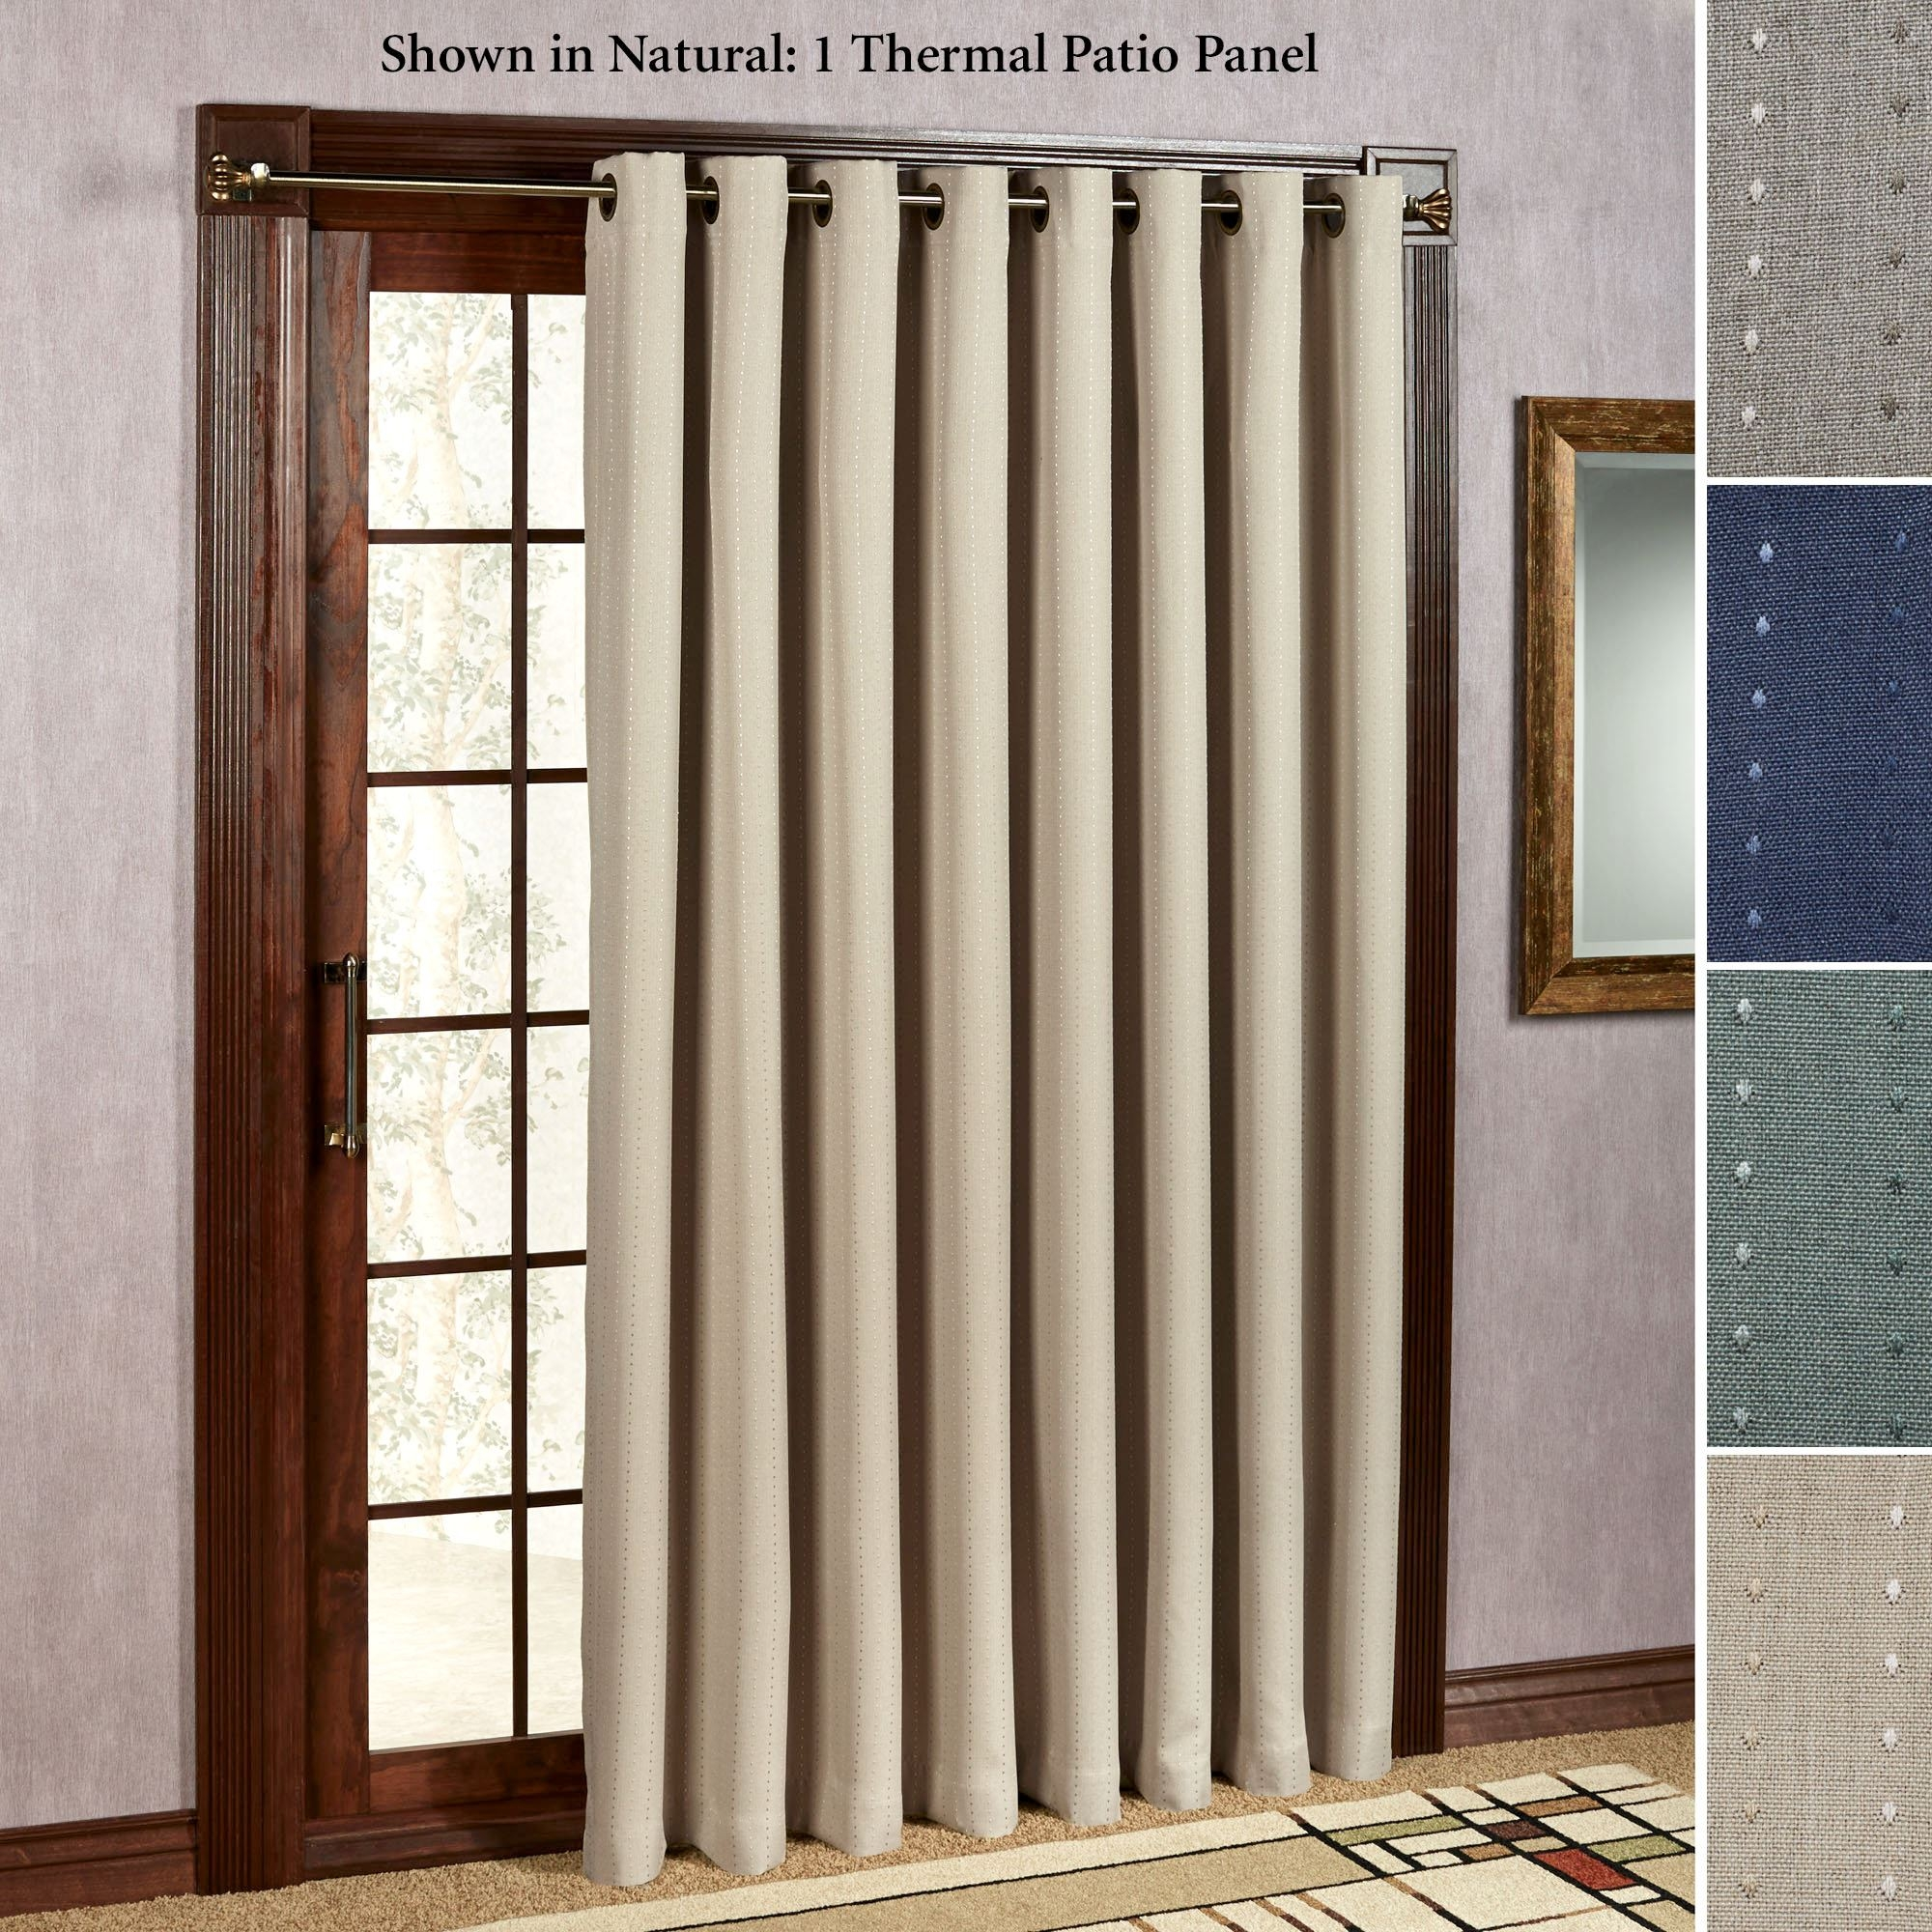 Curtain Panels For Sliding Patio DoorsCurtain Panels For Sliding Patio Doors